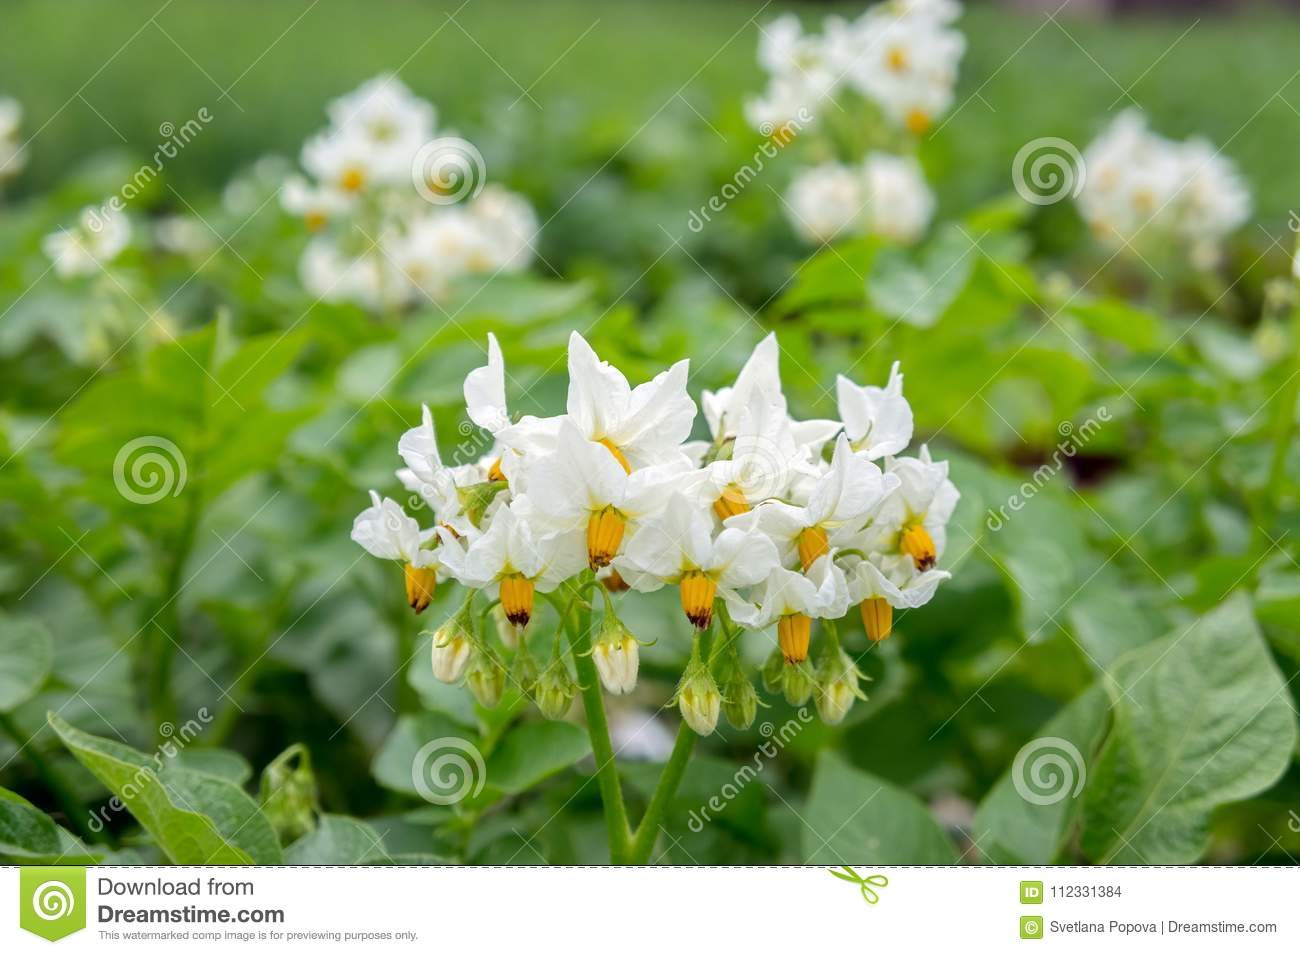 White Flower Of A Potato On A Vegetable Plantation In A Kitchen